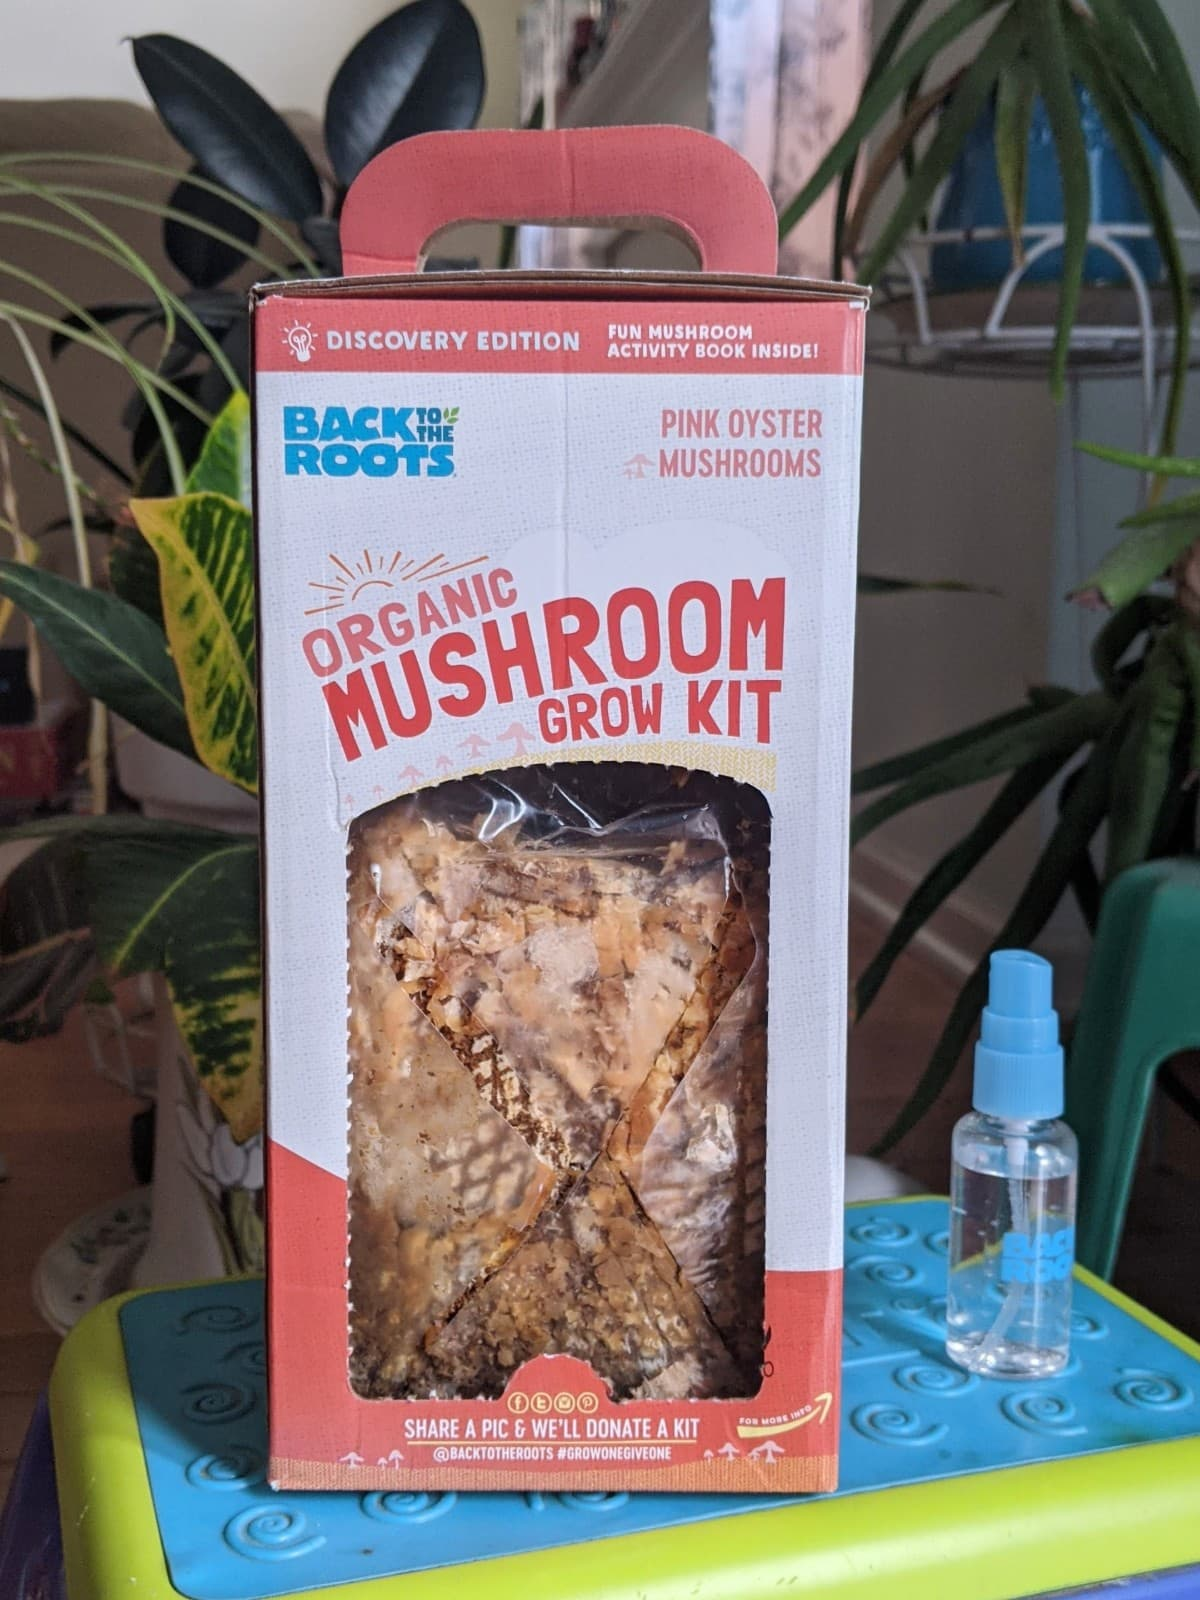 Later on day 1 of the Back to the Roots pink oyster mushroom kit, with more visible tiny caps